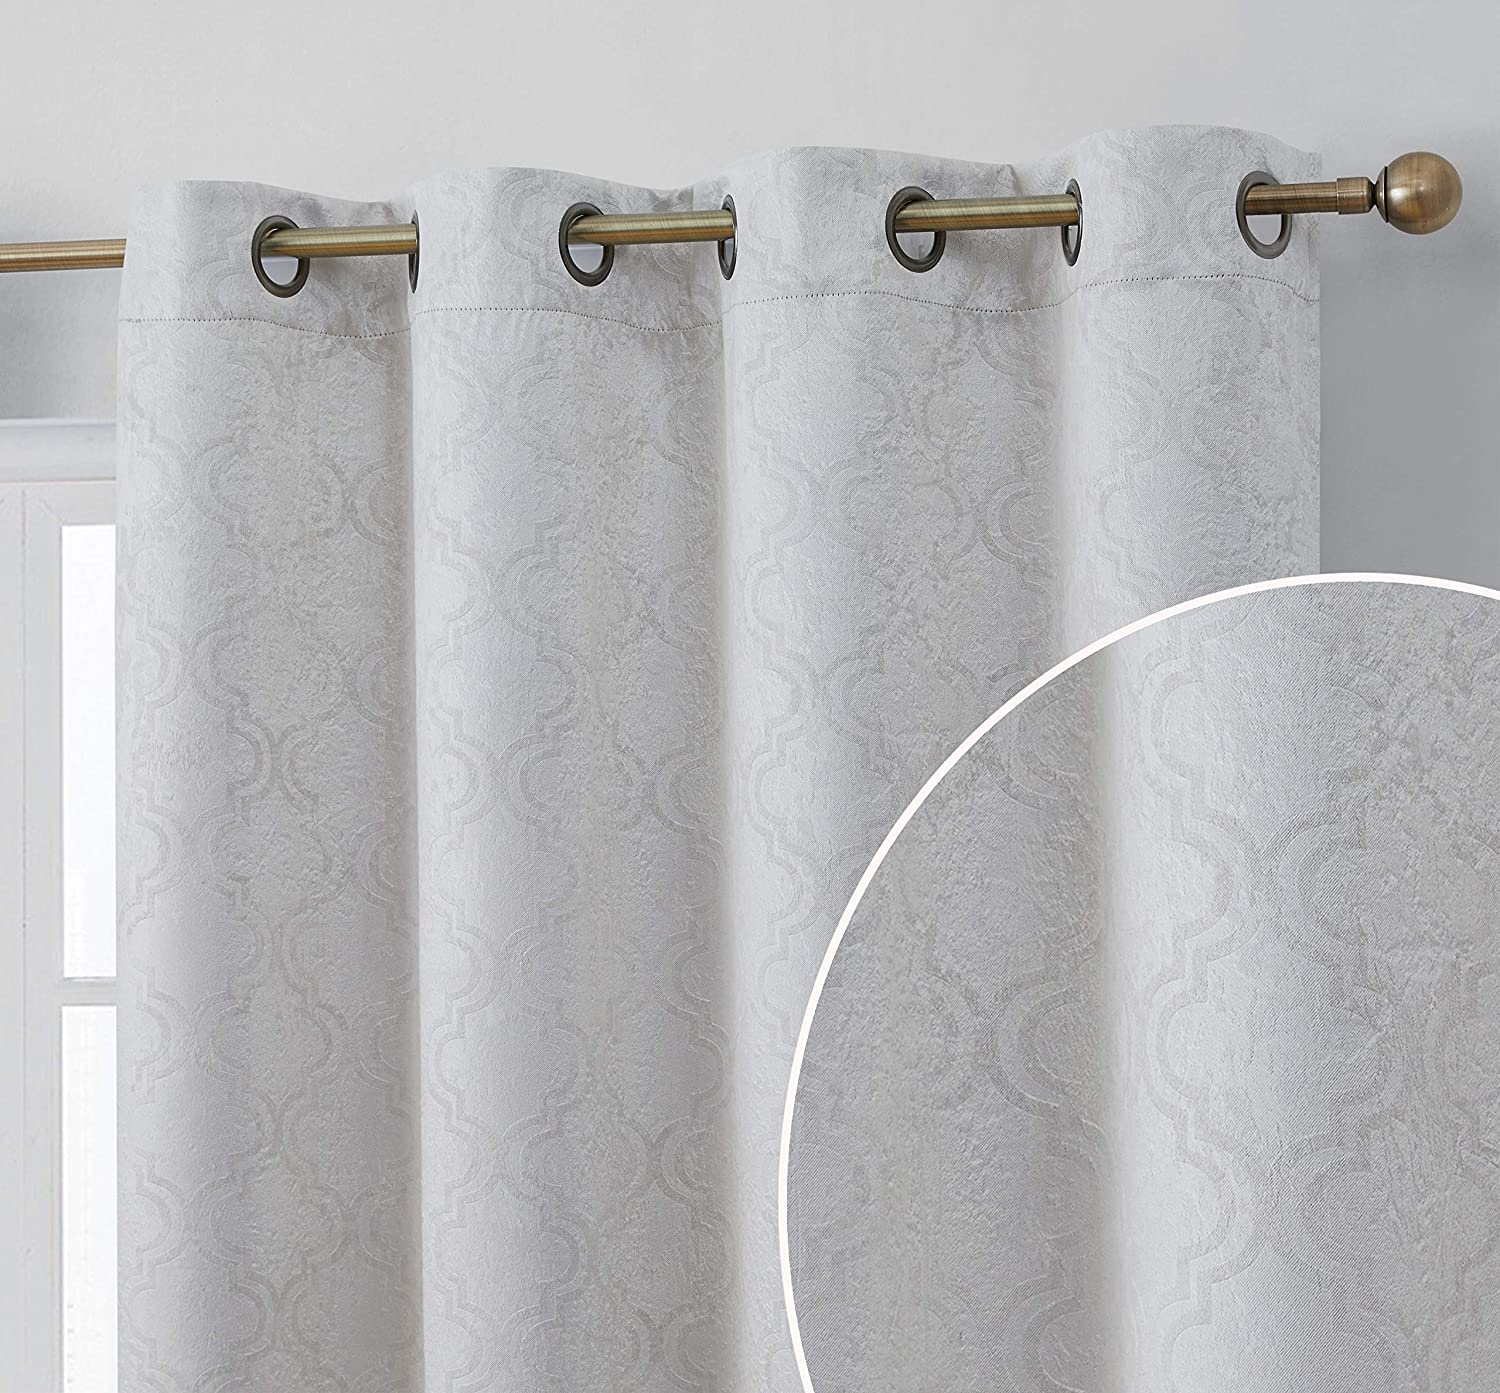 HLC.ME Redmont Lattice Pattern Thermal Insulated Energy Efficient Room Darkening Privacy Blackout Grommet Curtain Panels for Bedroom - Light Blocking - Set of 2 Panels (54 x 84 Inch Long, Light Grey)